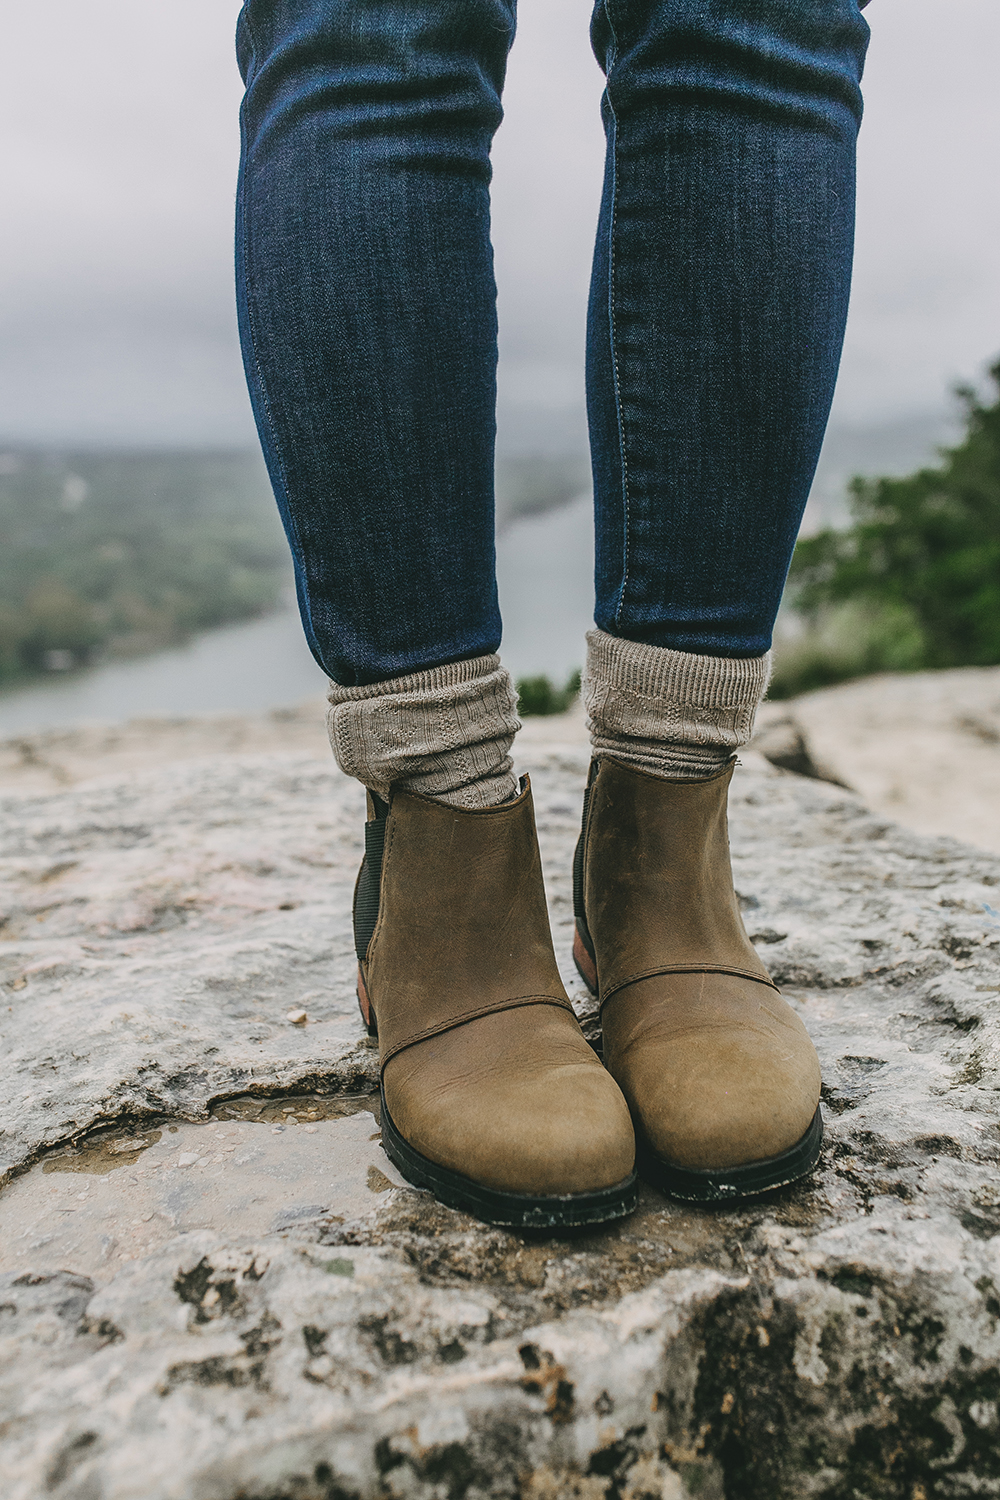 livvyland-blog-olivia-watson-austin-texas-lifestyle-blog-mount-bonnell-patagonia-los-gatos-vest-sorel-emelie-waterproof-chelsea-boots-hike-outfit-1